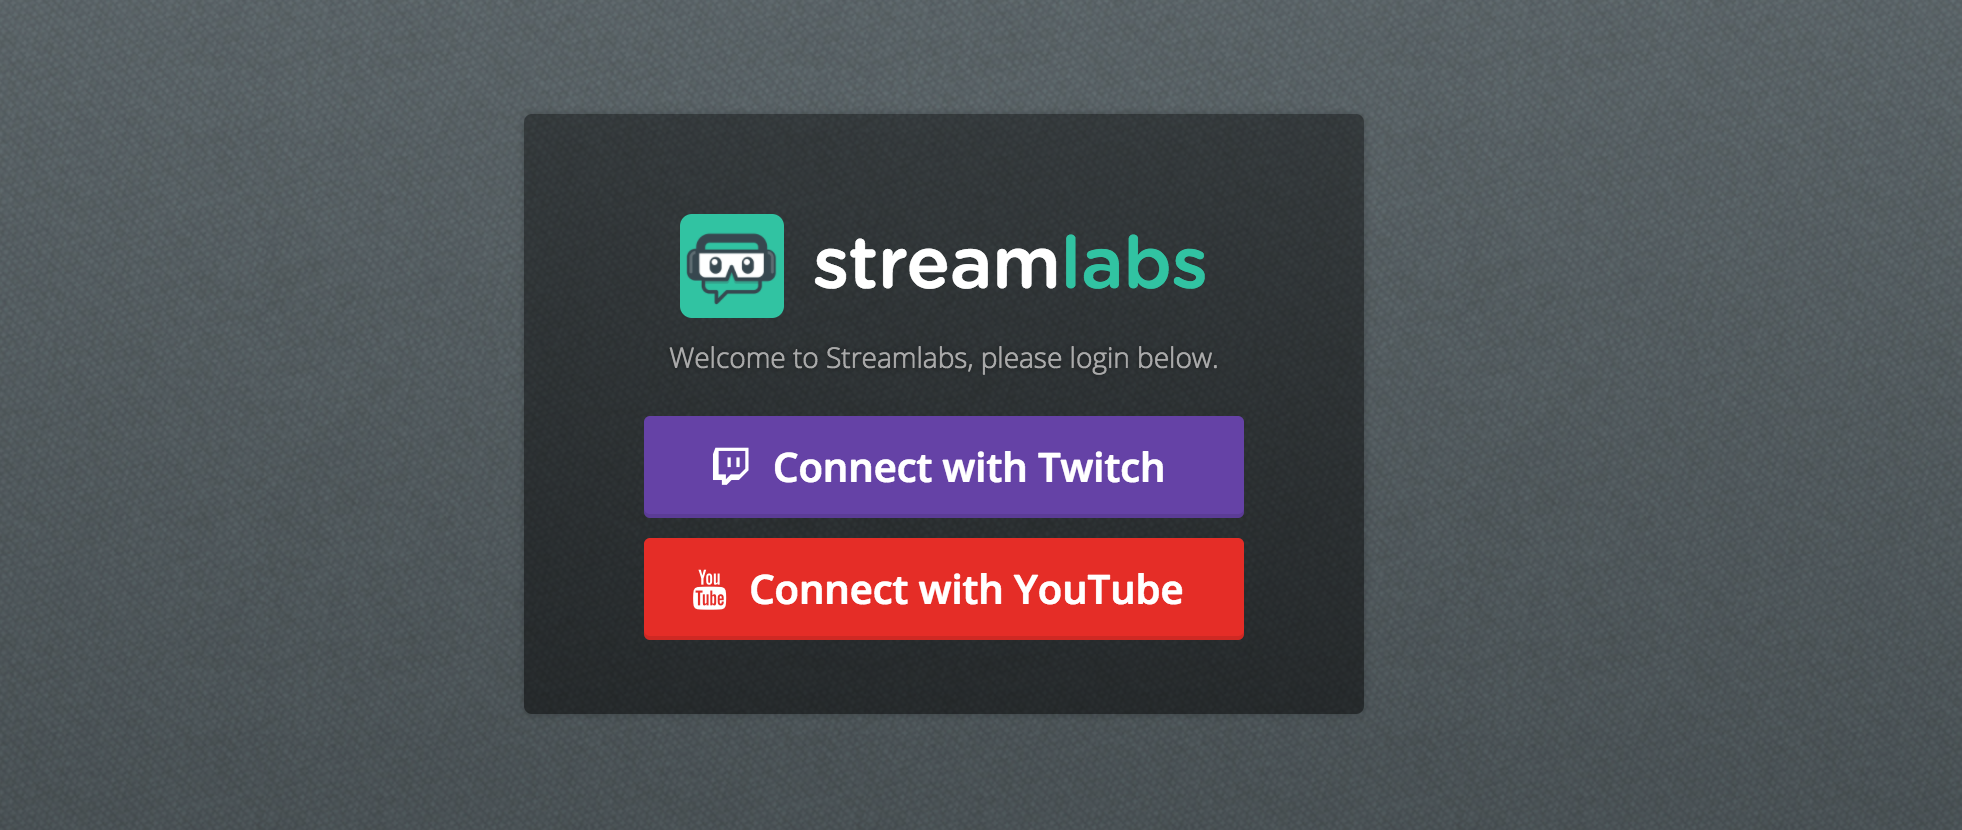 YouTube support is here, finally  - Streamlabs Blog